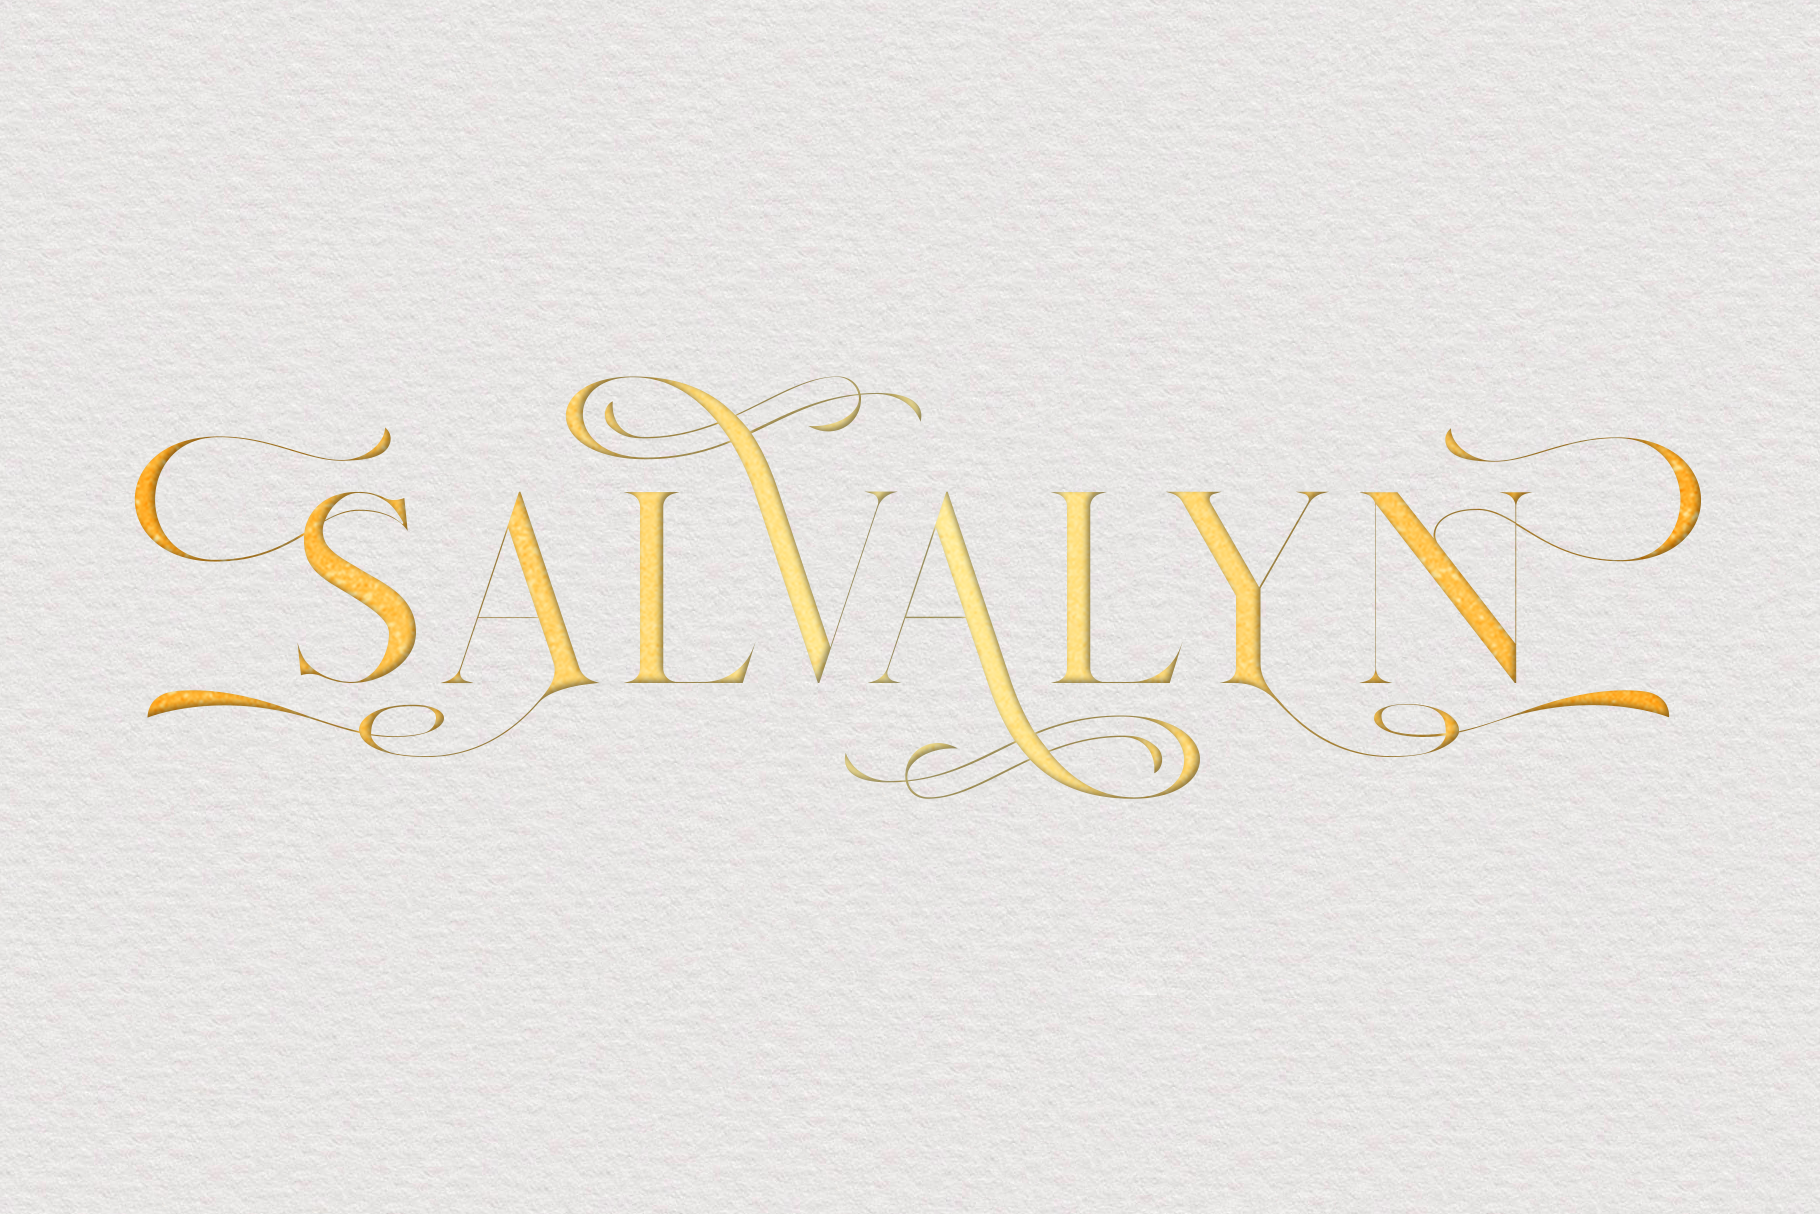 Salvalyn - Stylistic Serif Font example image 11